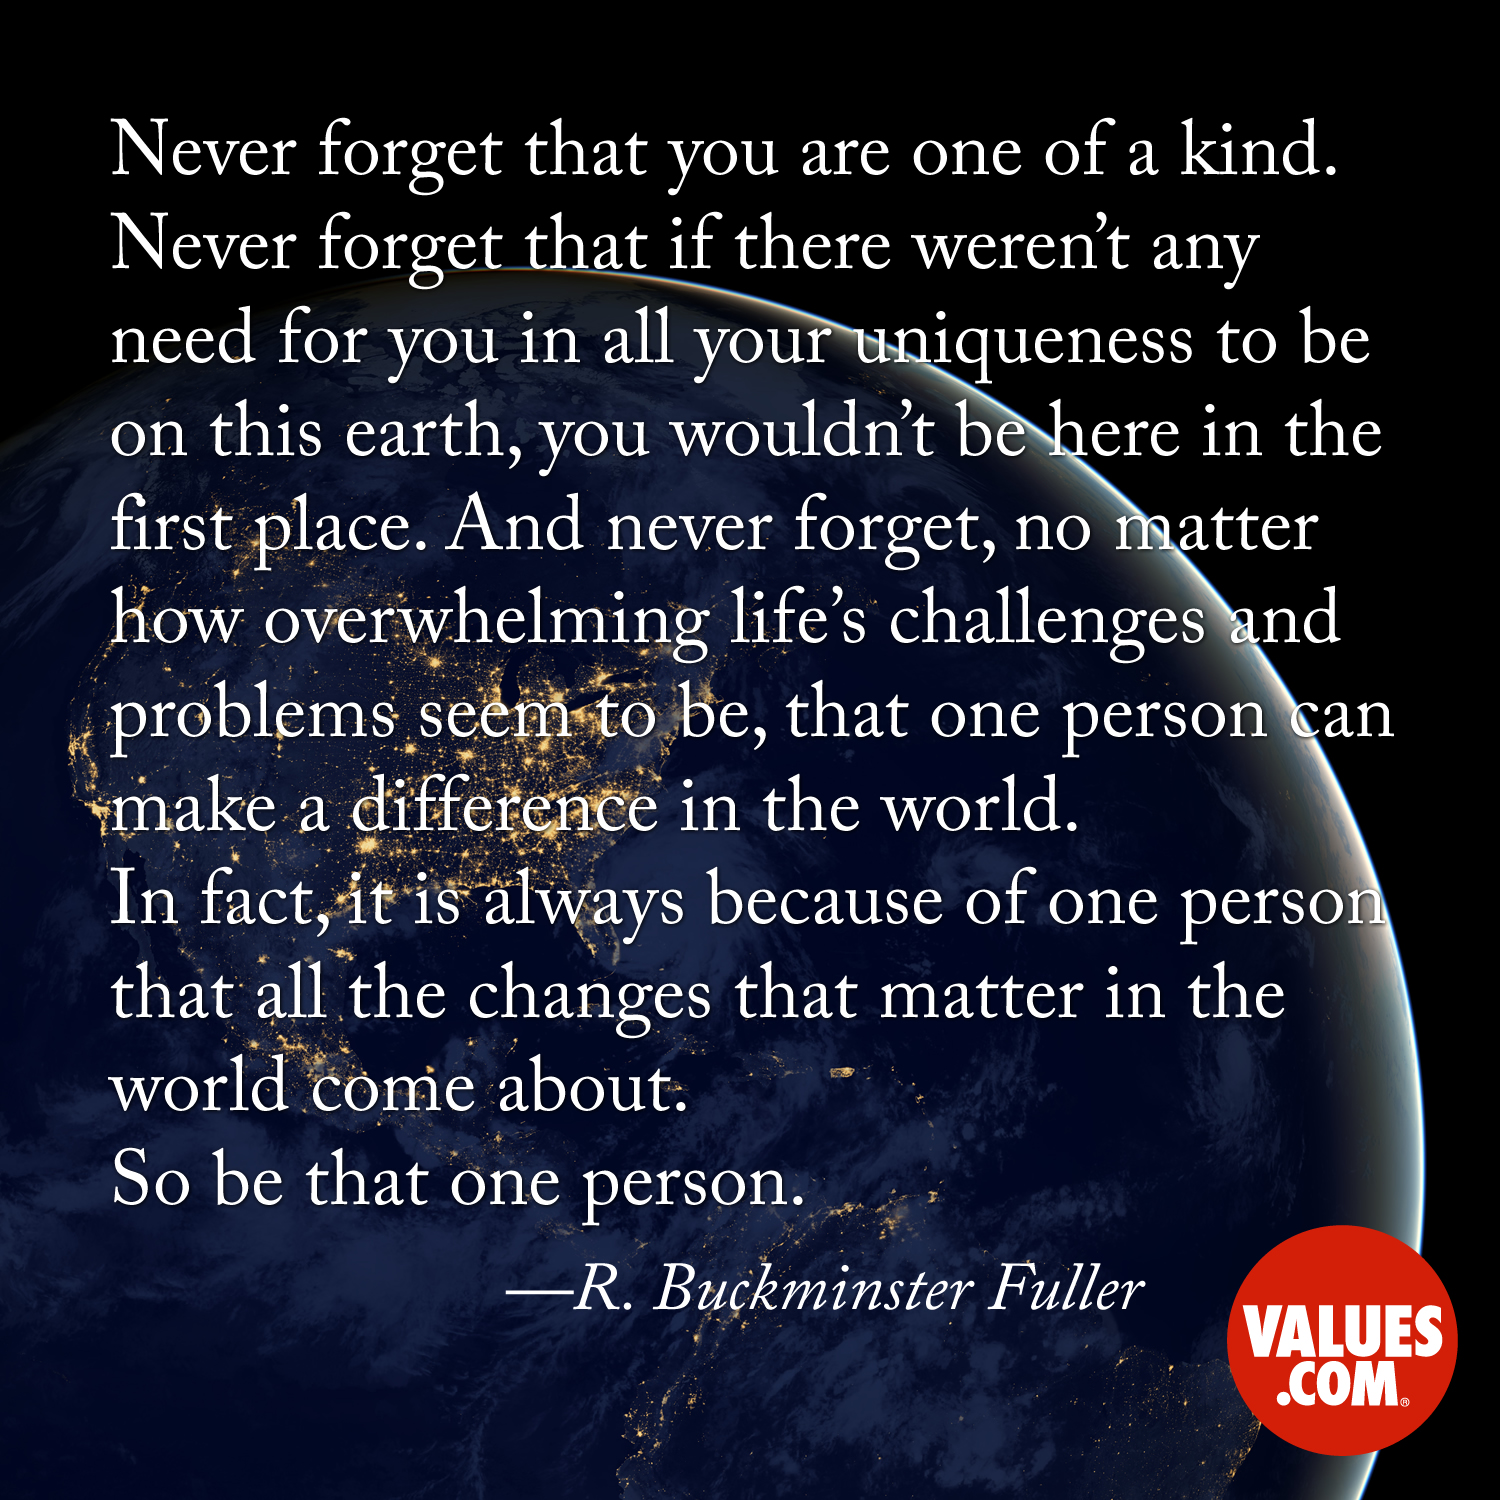 Never forget that you are one of a kind. Never forget that if there weren't any need for you in all your uniqueness to be on this earth, you wouldn't be here in the first place. And never forget, no matter how overwhelming life's challenges and problems seem to be, that one person can make a difference in the world. In fact, it is always because of one person that all the changes that matter in the world come about. So be that one person. —R. Buckminster Fuller